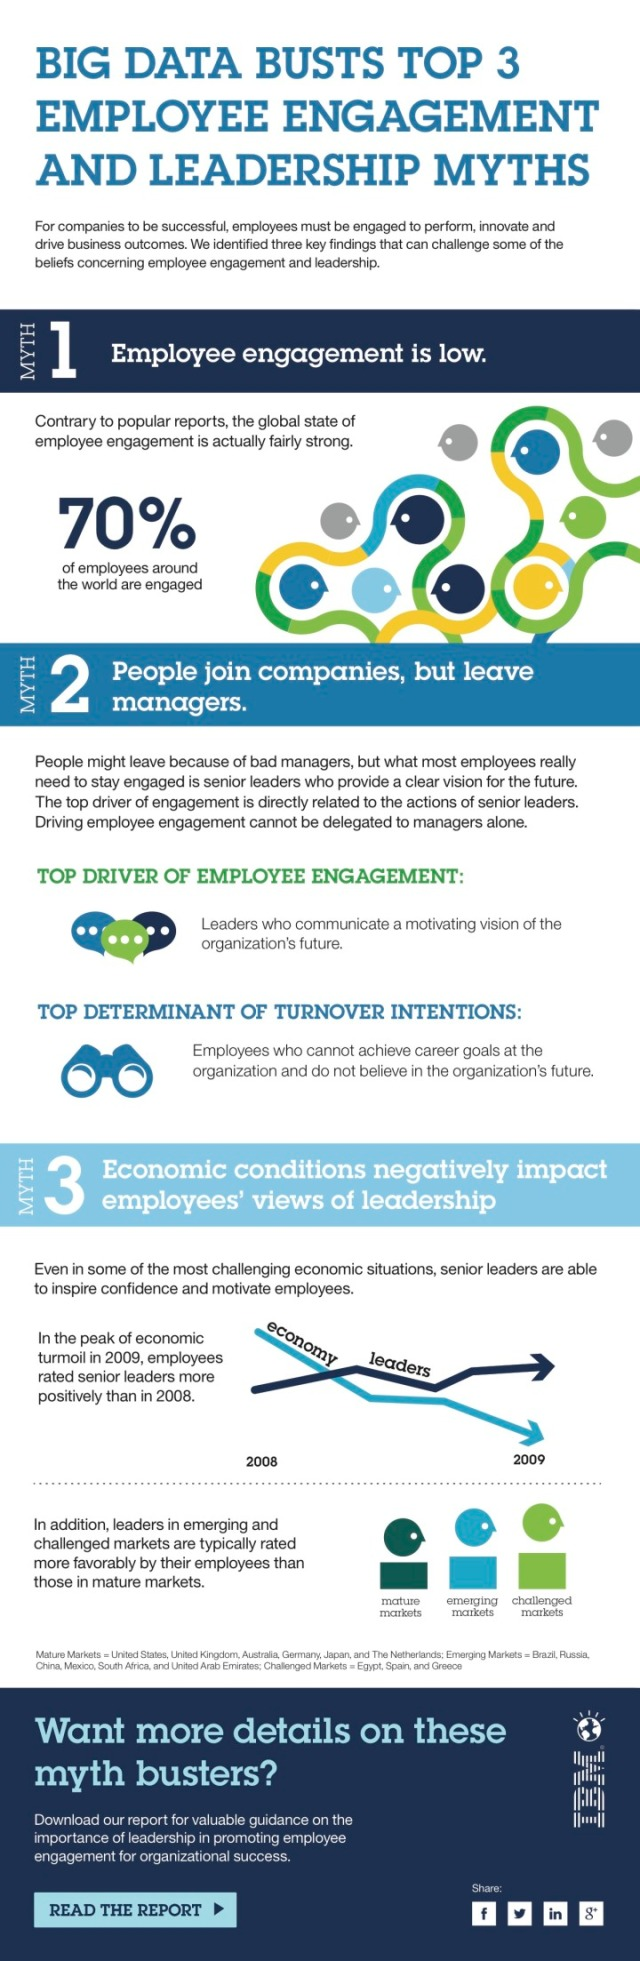 IBM_Big Data Busts Top Three Employee Engagement Myths_Summary_20150121